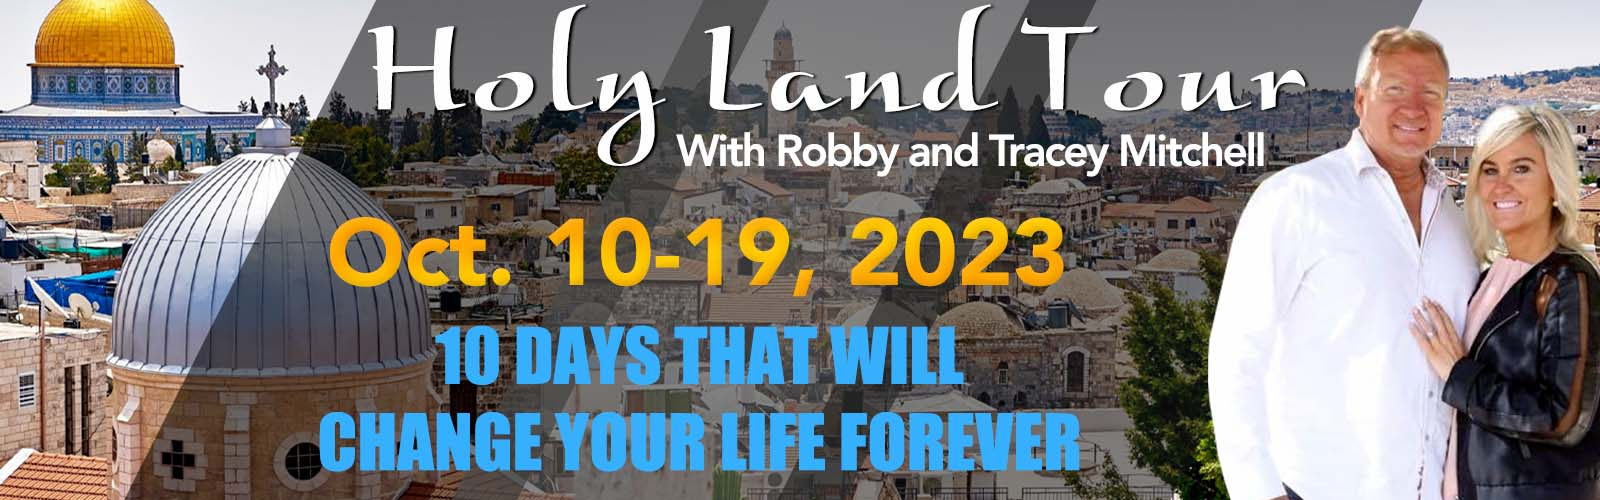 Holy Land Tour with Robby and Tracey